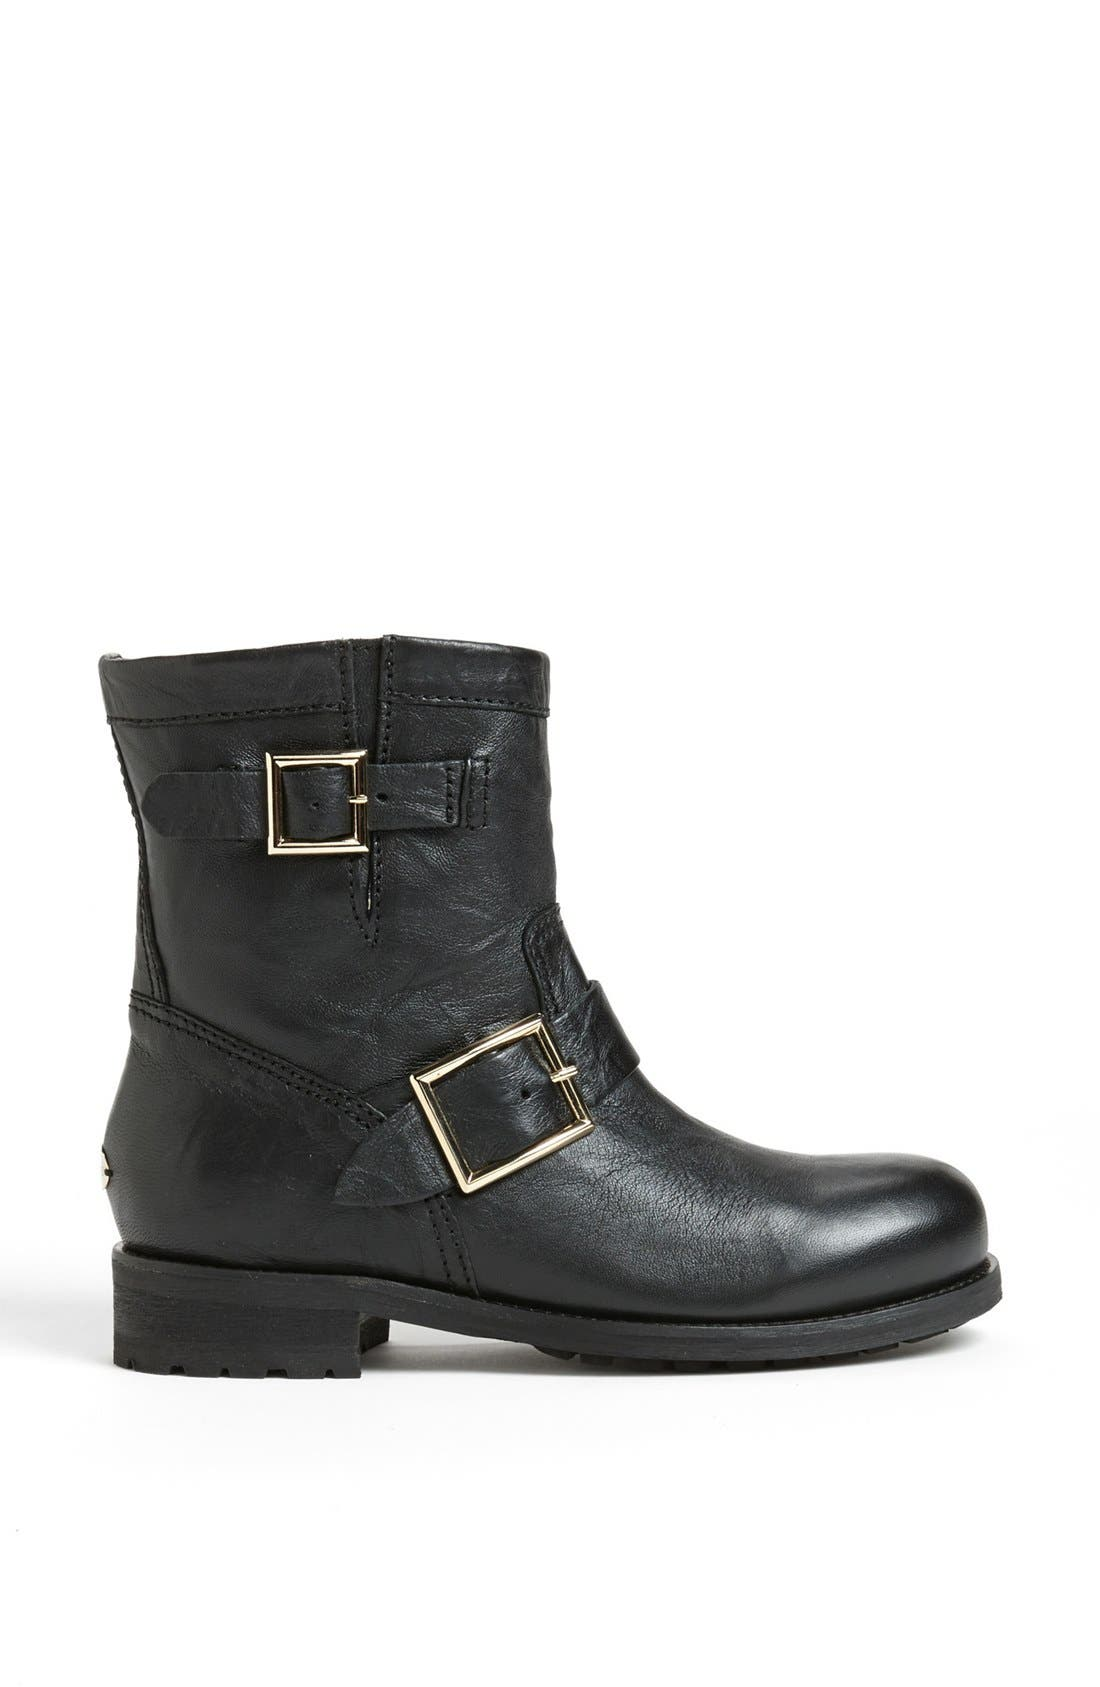 Alternate Image 4  - Jimmy Choo 'Youth' Short Biker Boot (Women)